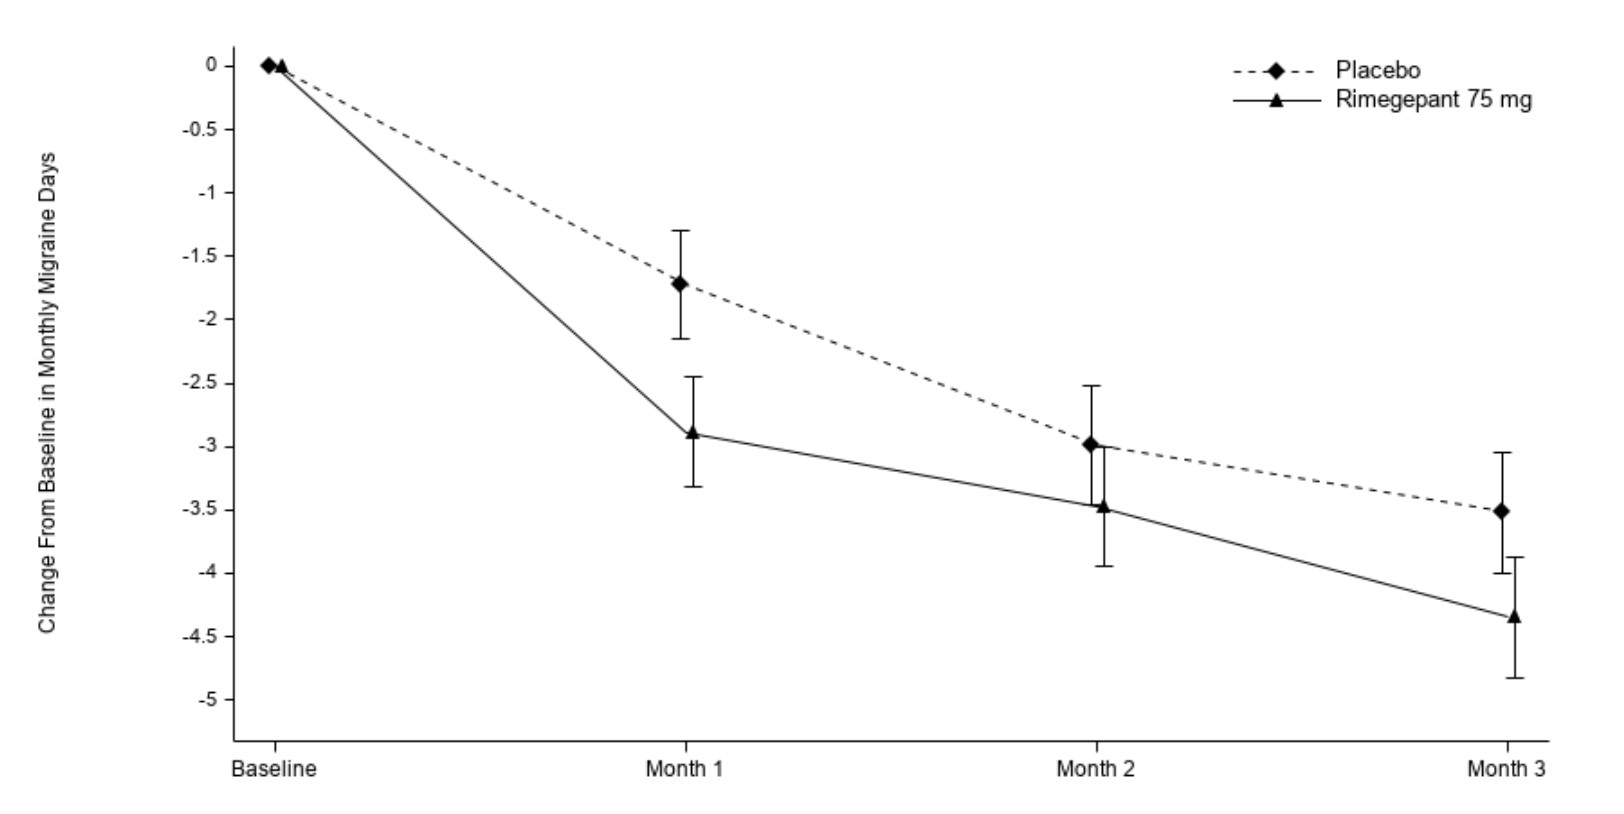 Figure 3:Change from Baseline in Monthly Migraine Days in Study 2a